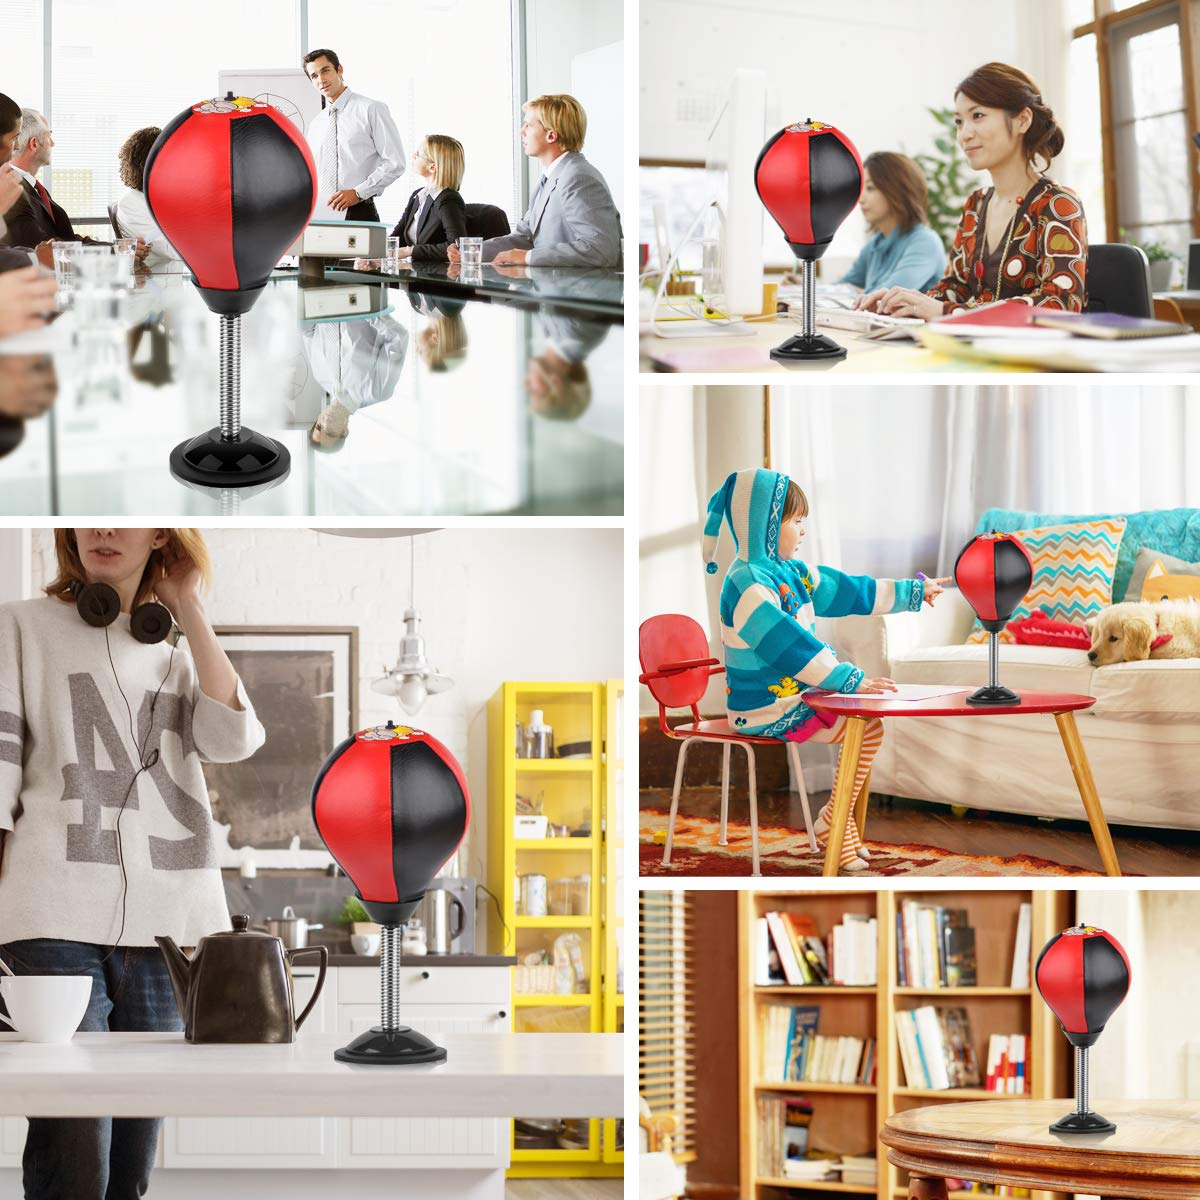 Cyrus Desktop Punching Bag Stress Buster Ball Stress Relief Toys with Pump for Office Home Kids Adults